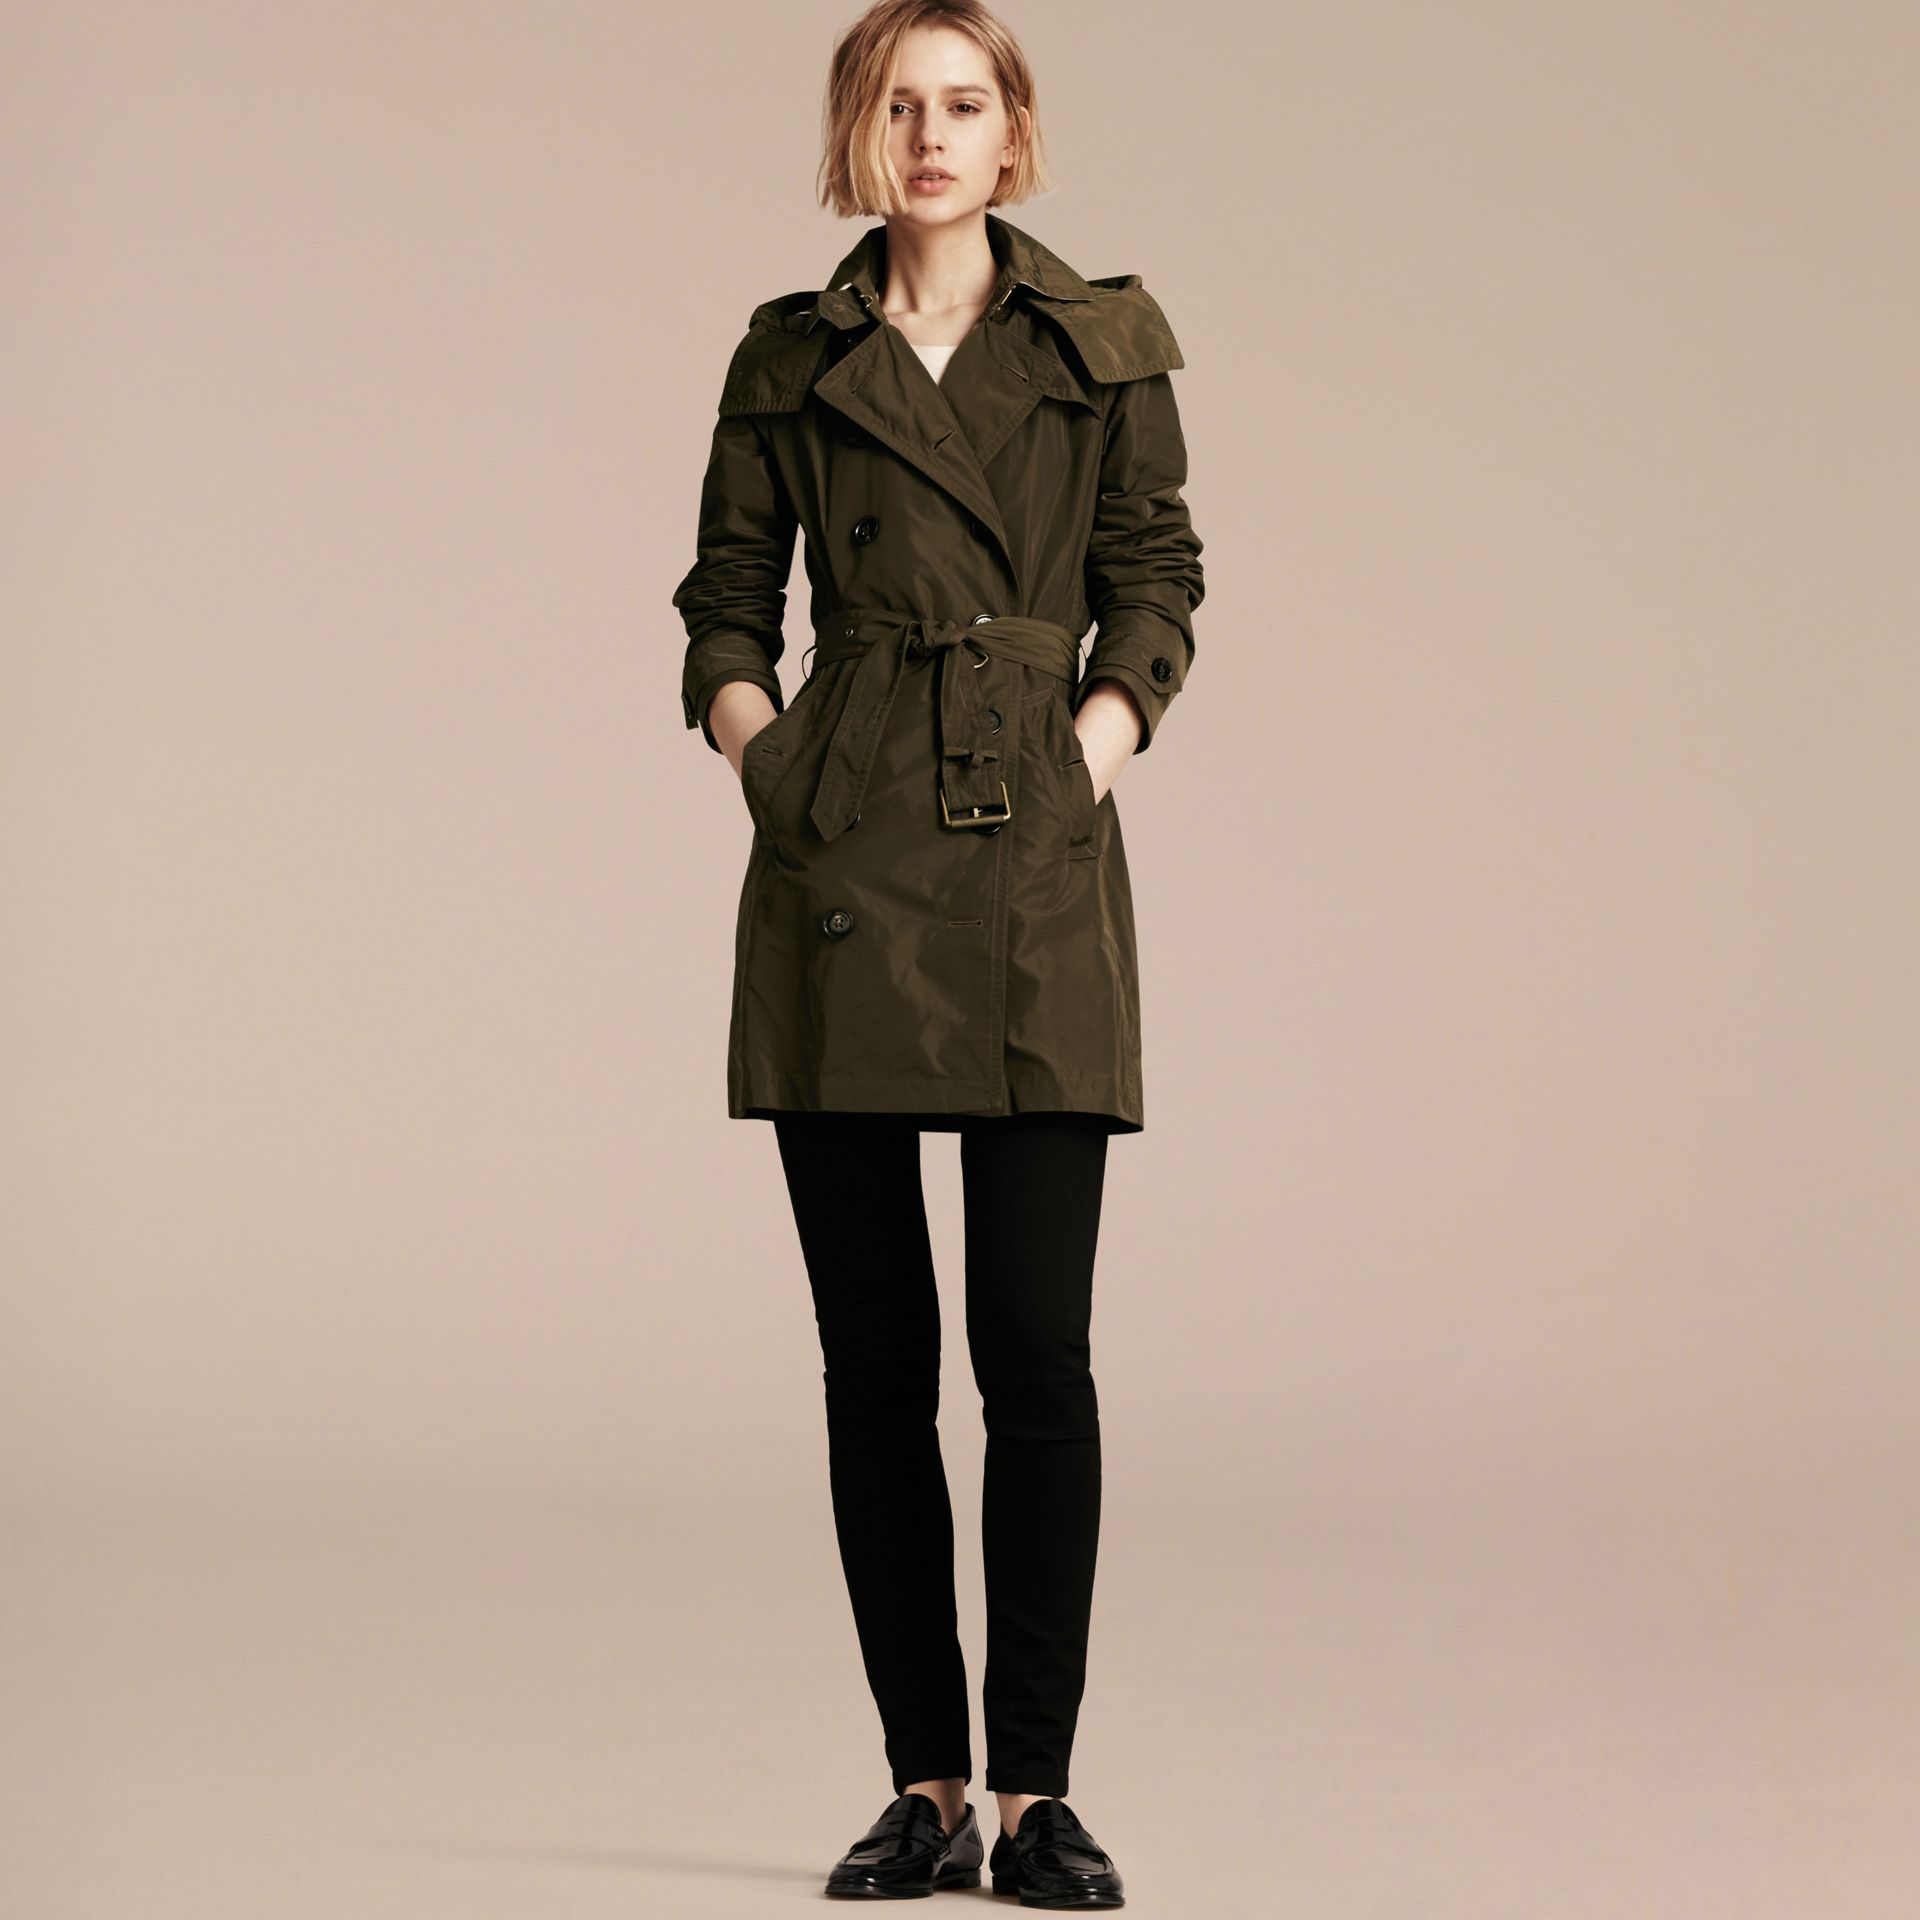 Taffeta Trench Coat with Detachable Hood in Dark Olive - Women | Burberry Canada - gallery image 7